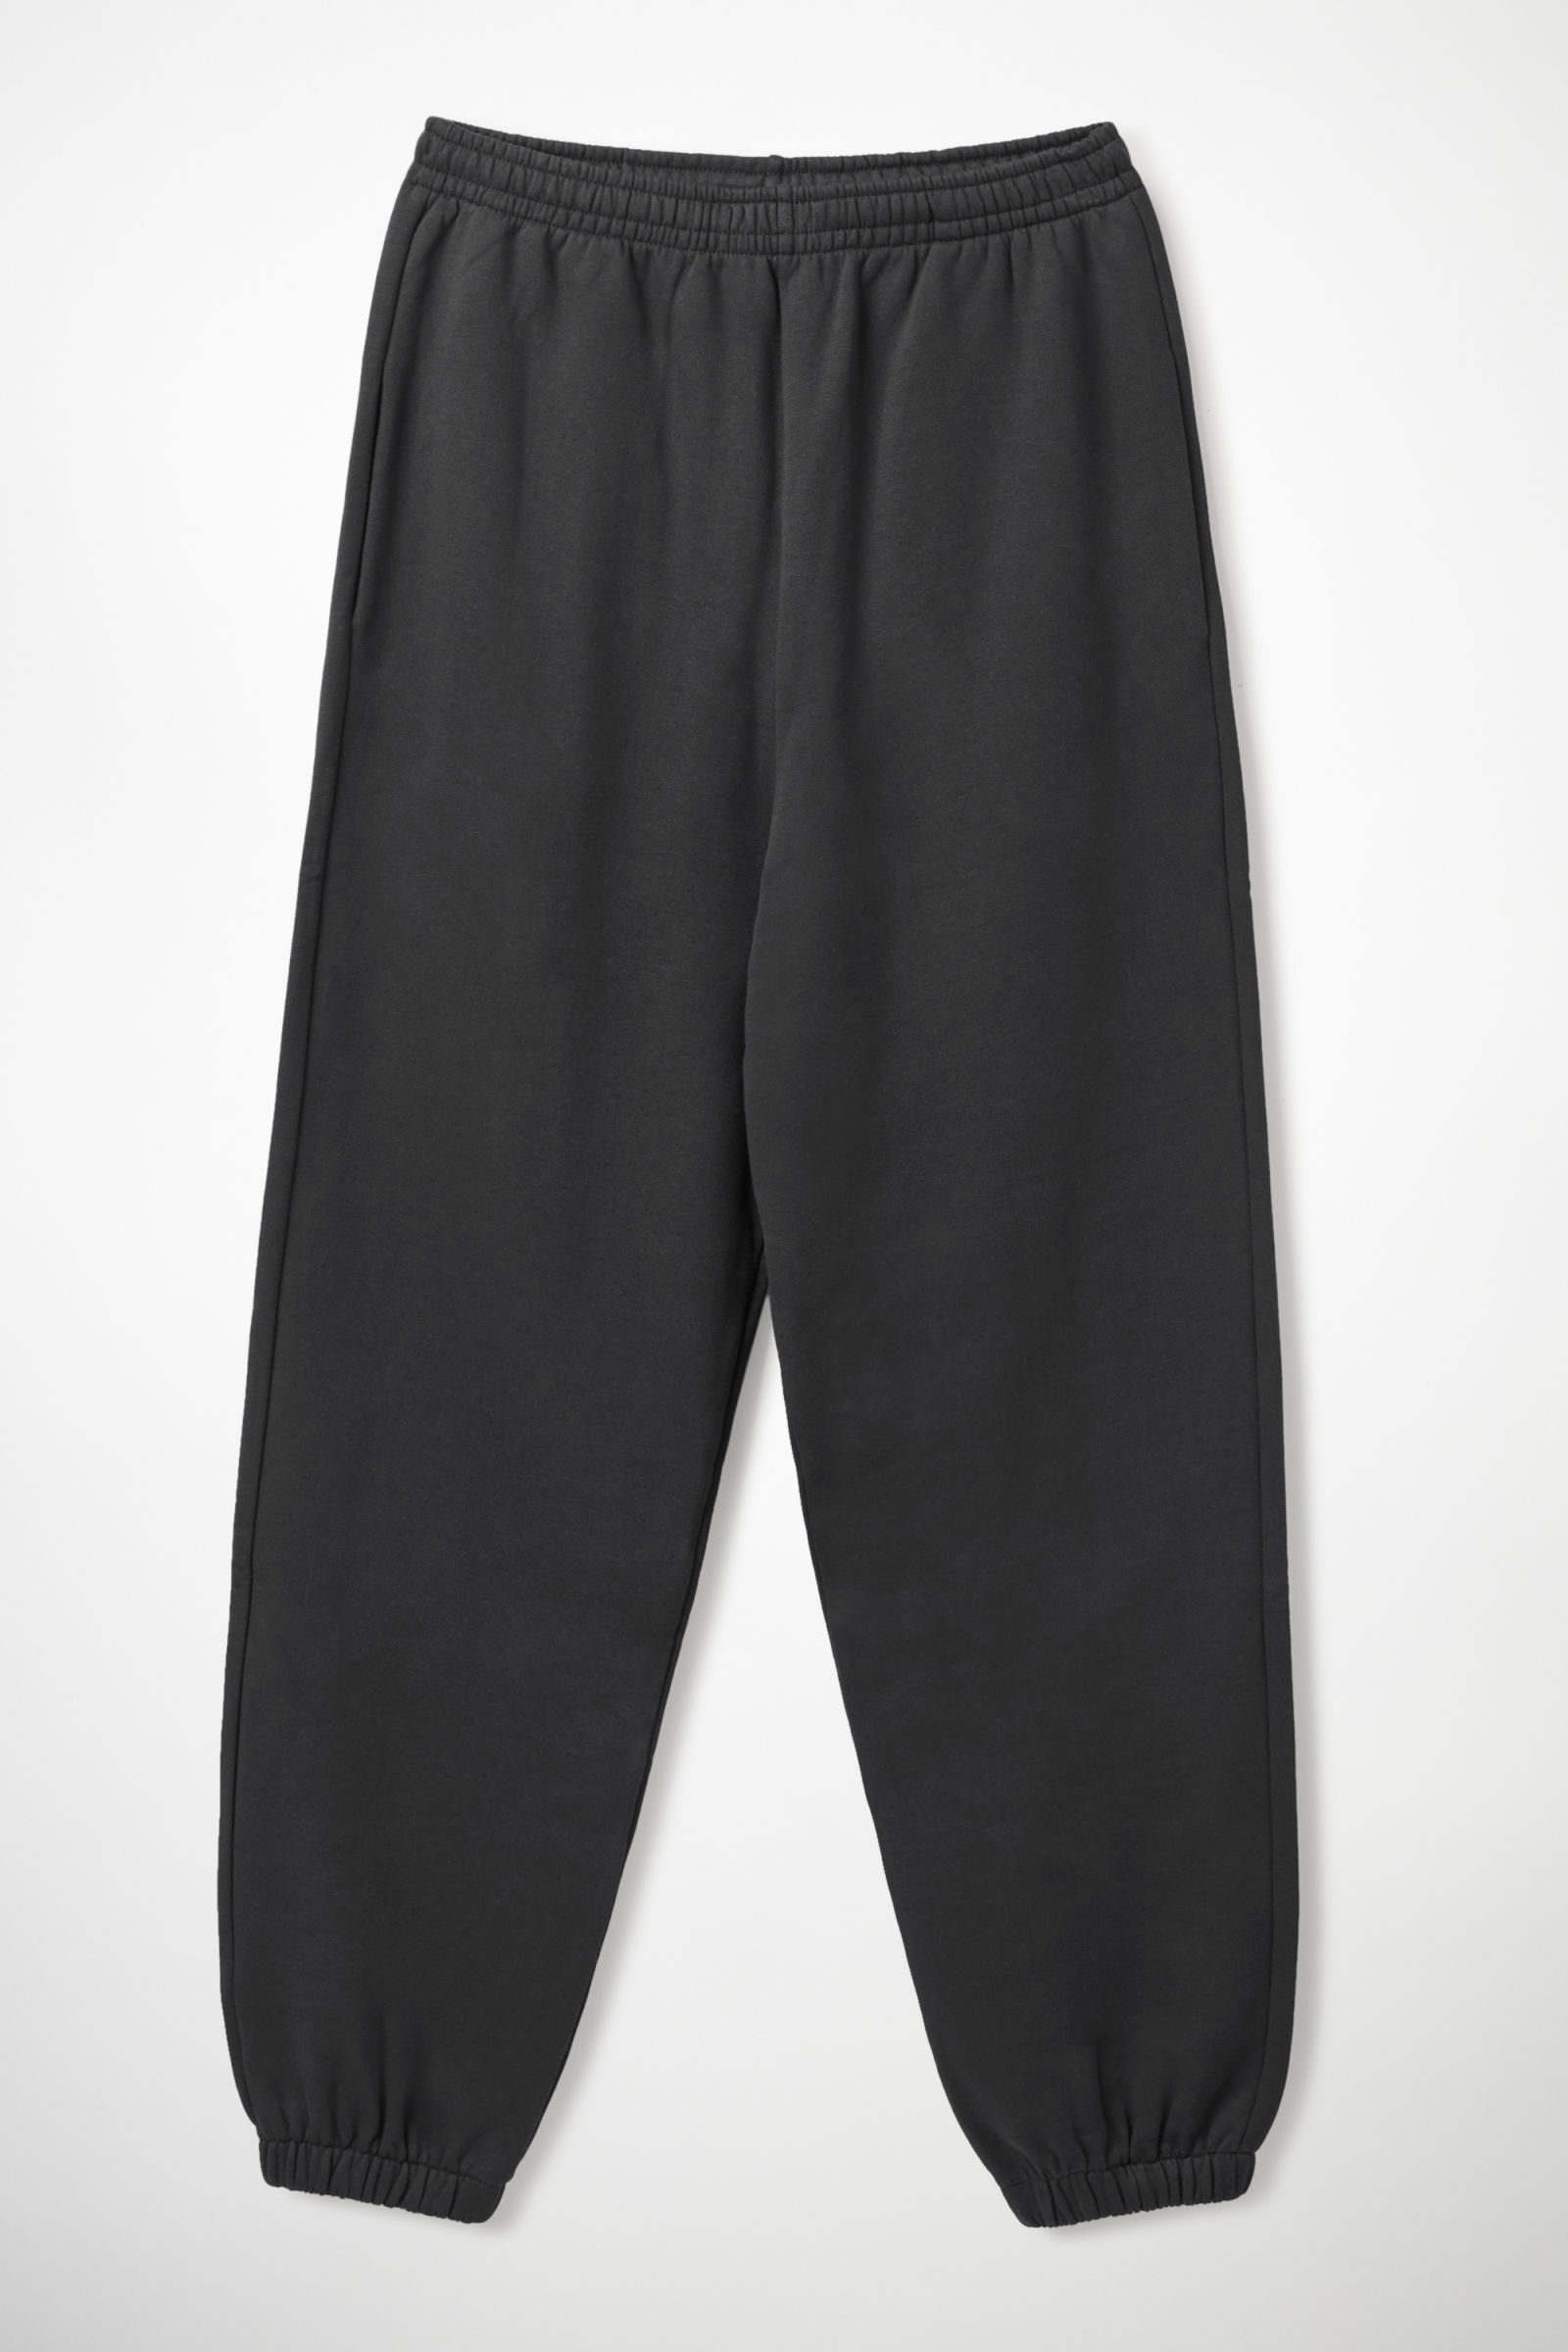 COS JERSEY JOGGERS,black